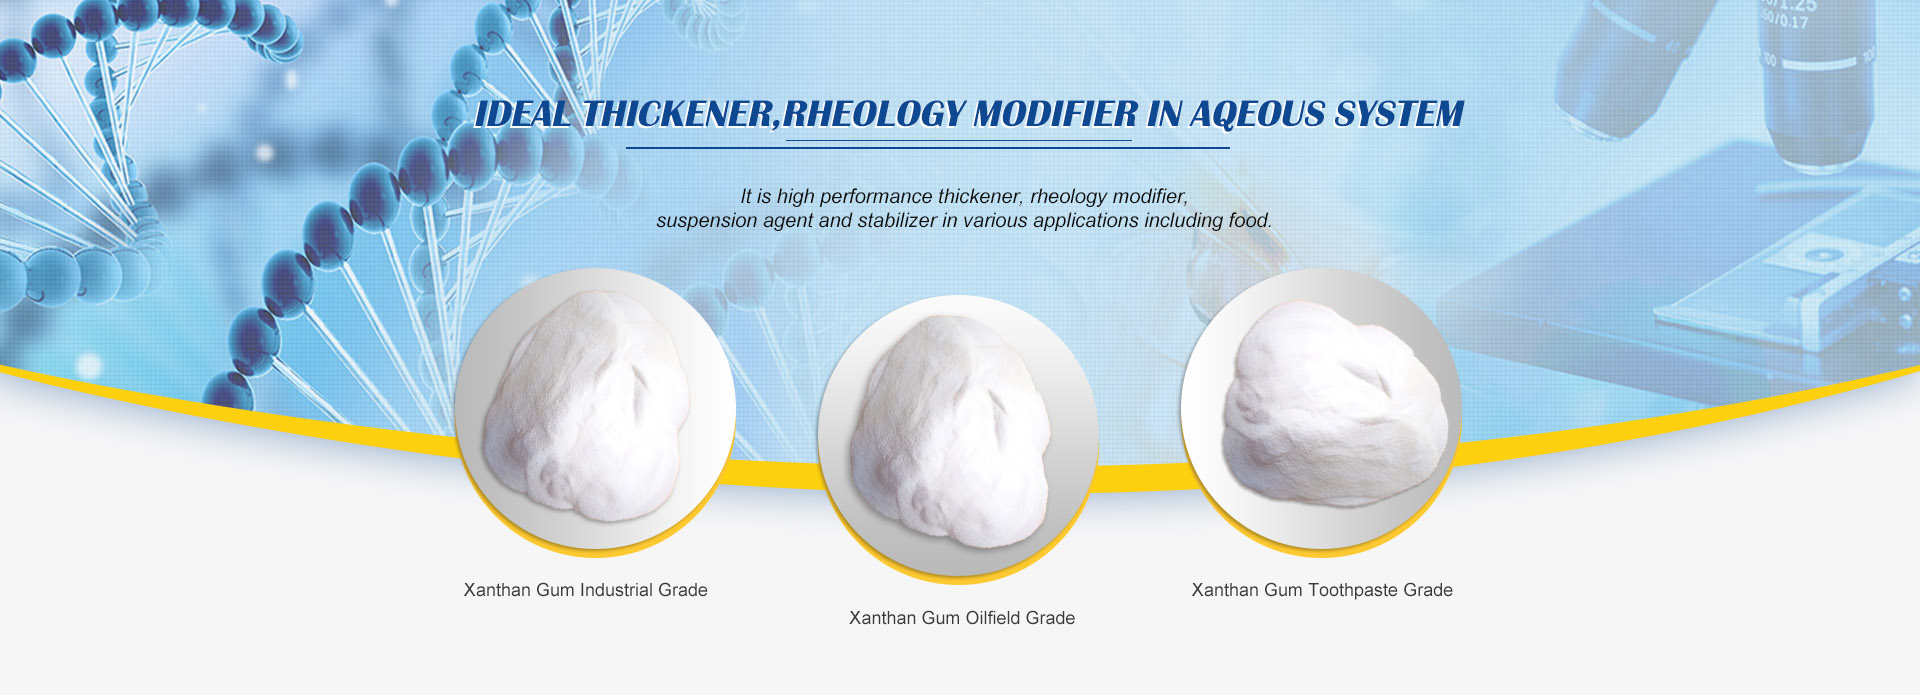 Ideal Thickener,rheology modifier in aqeous system